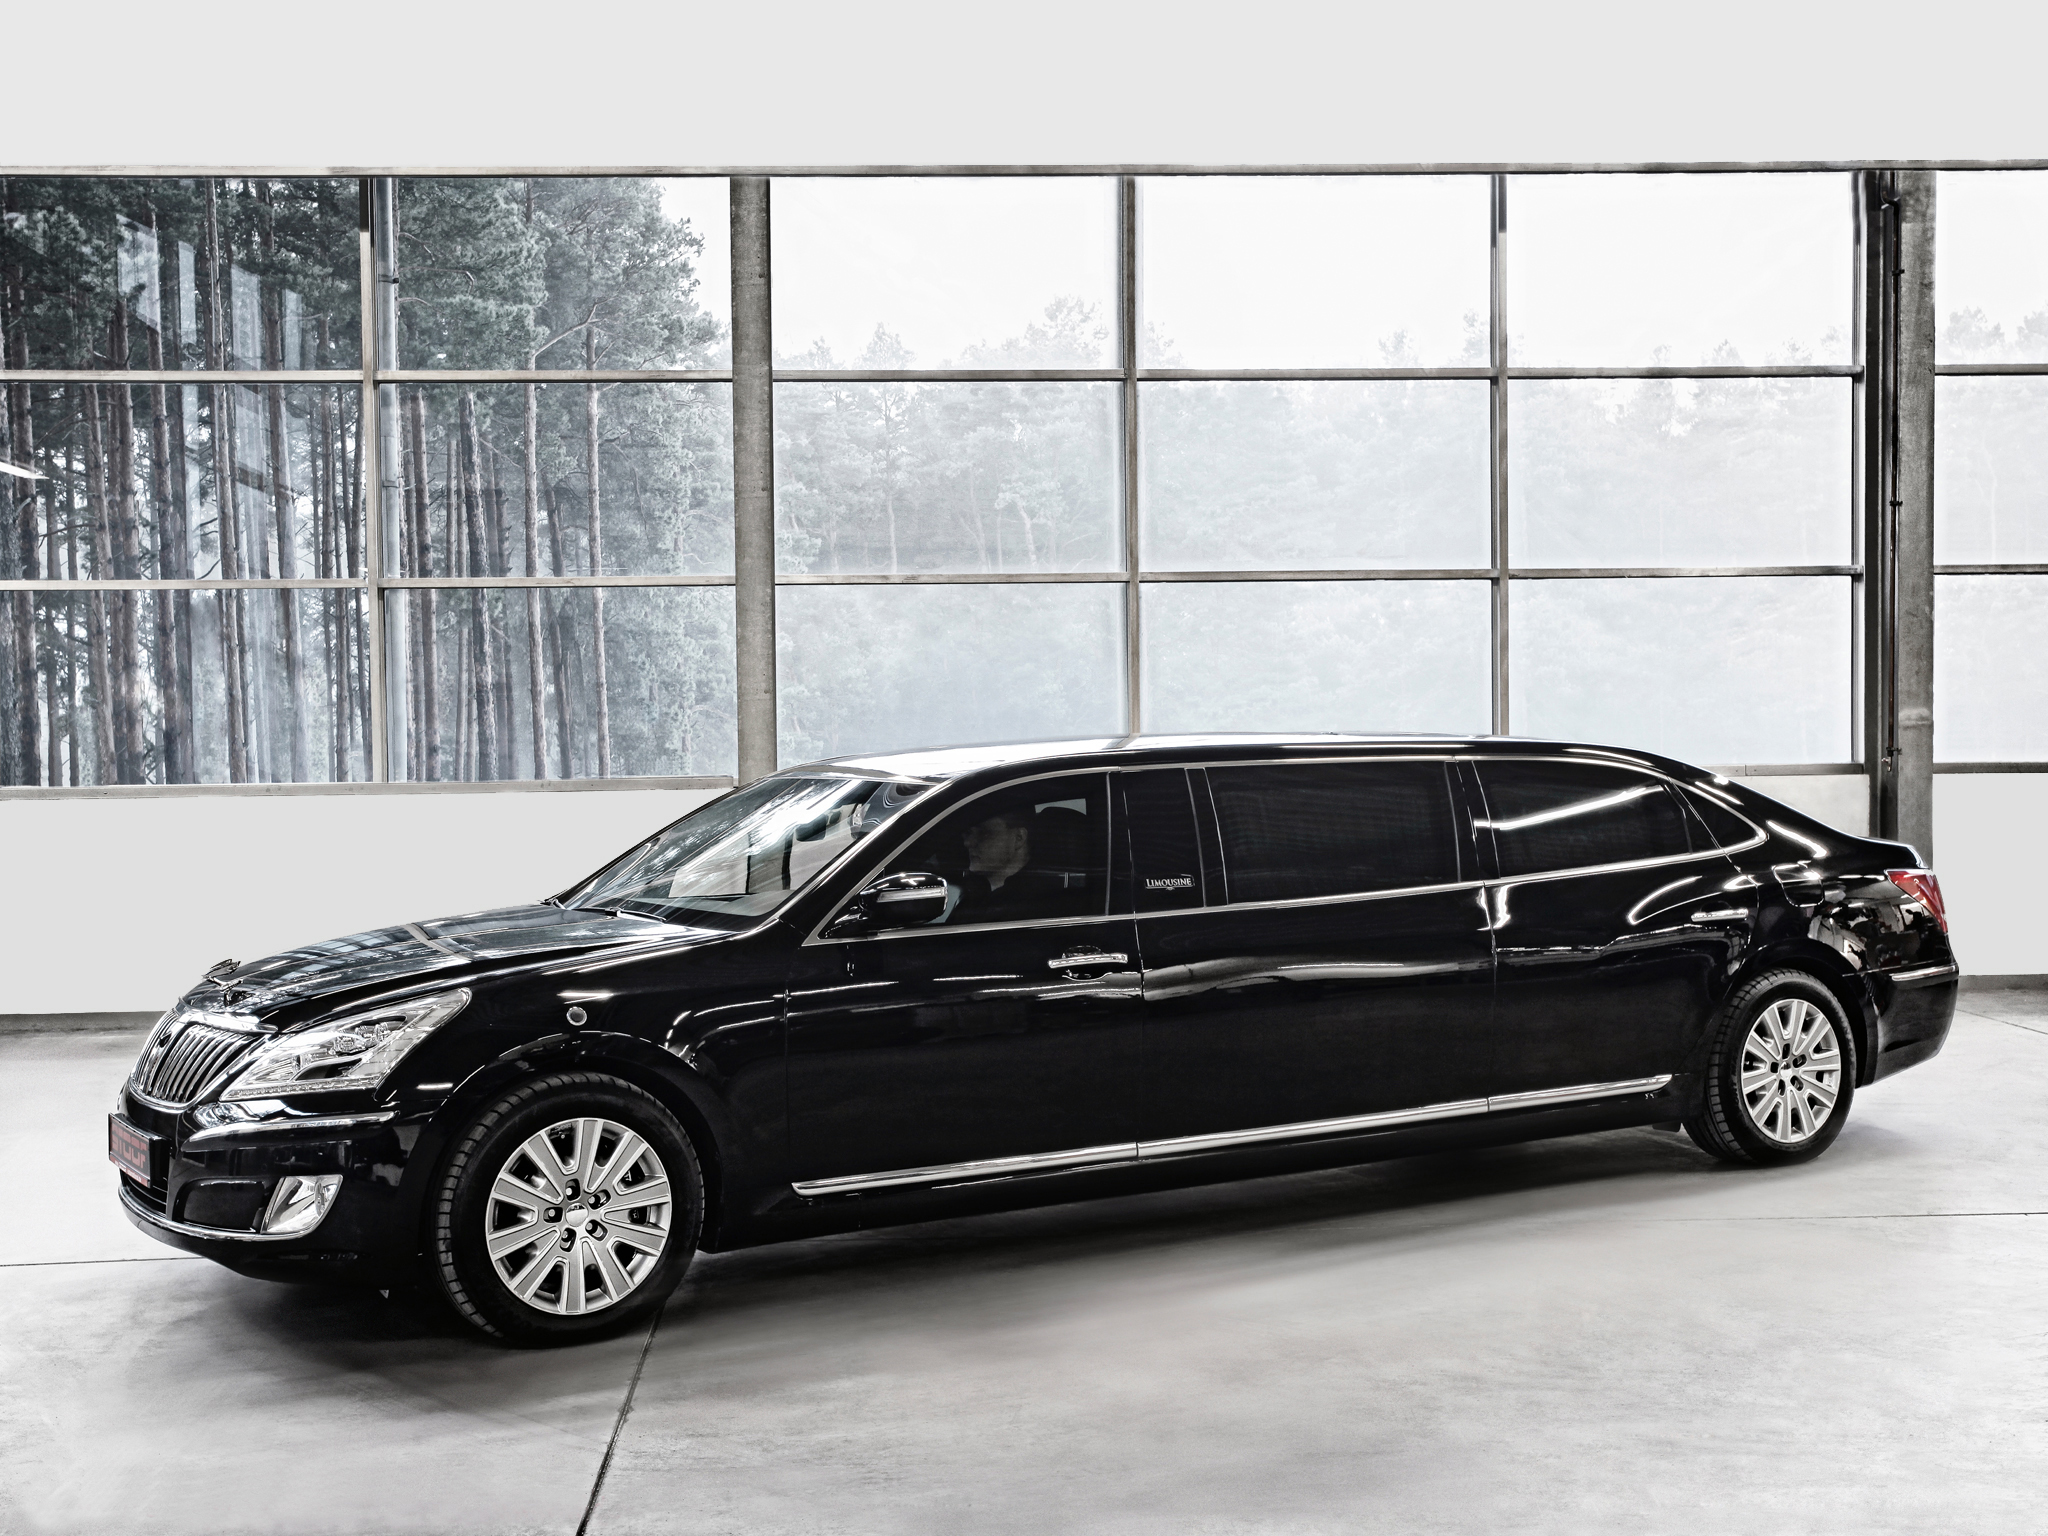 2012 hyundai equus armored stretch limousine luxury transport wallpaper 2048x1536 115346